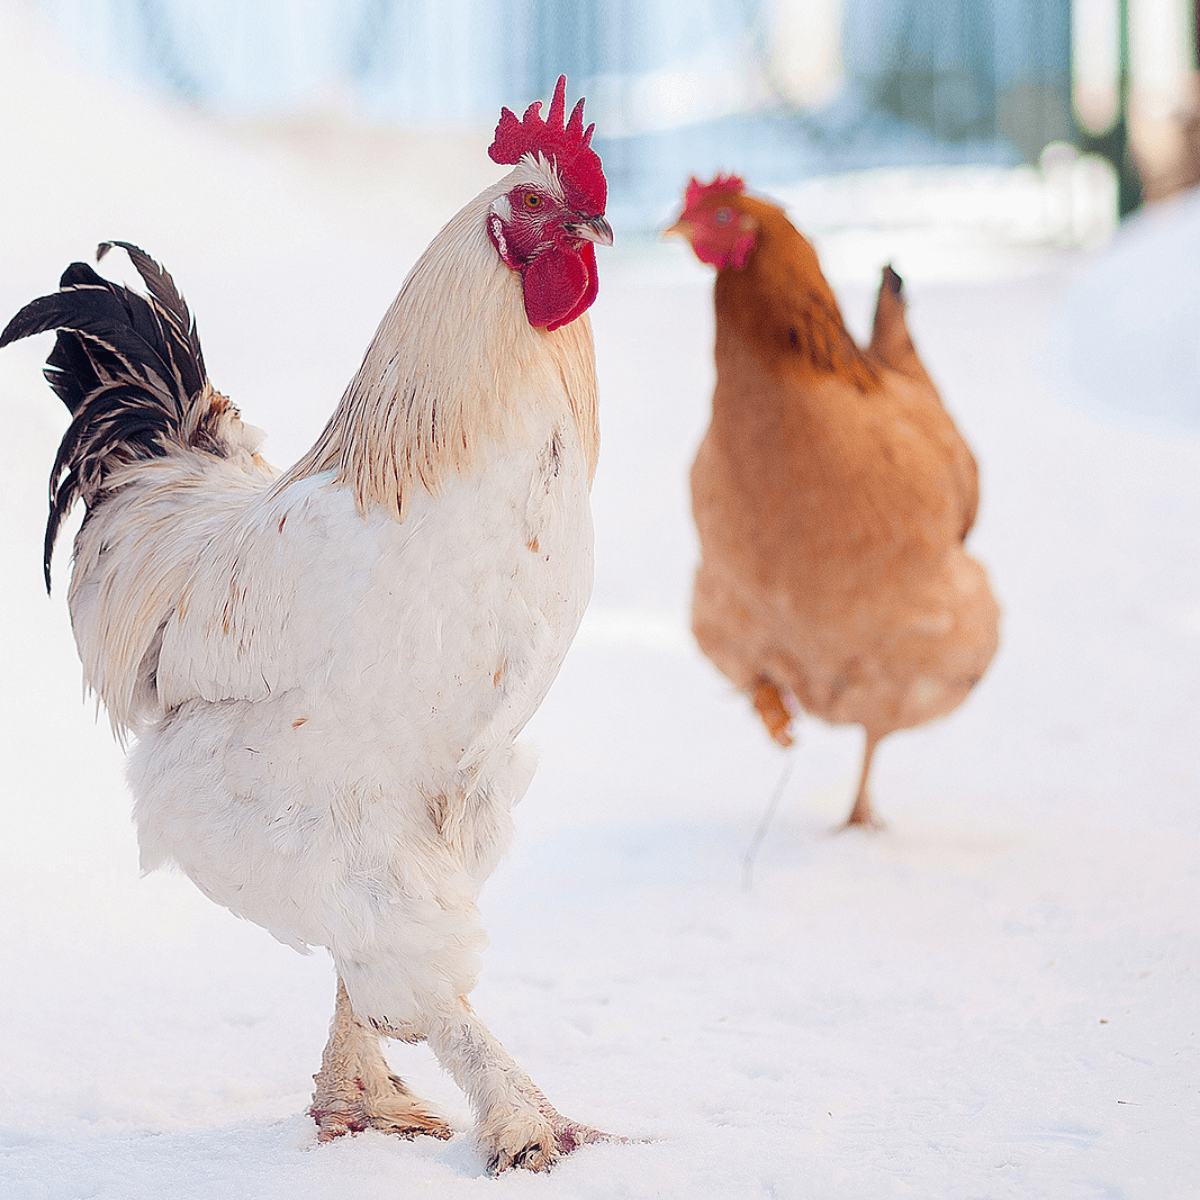 How Do Chickens Stay Warm in the Winter